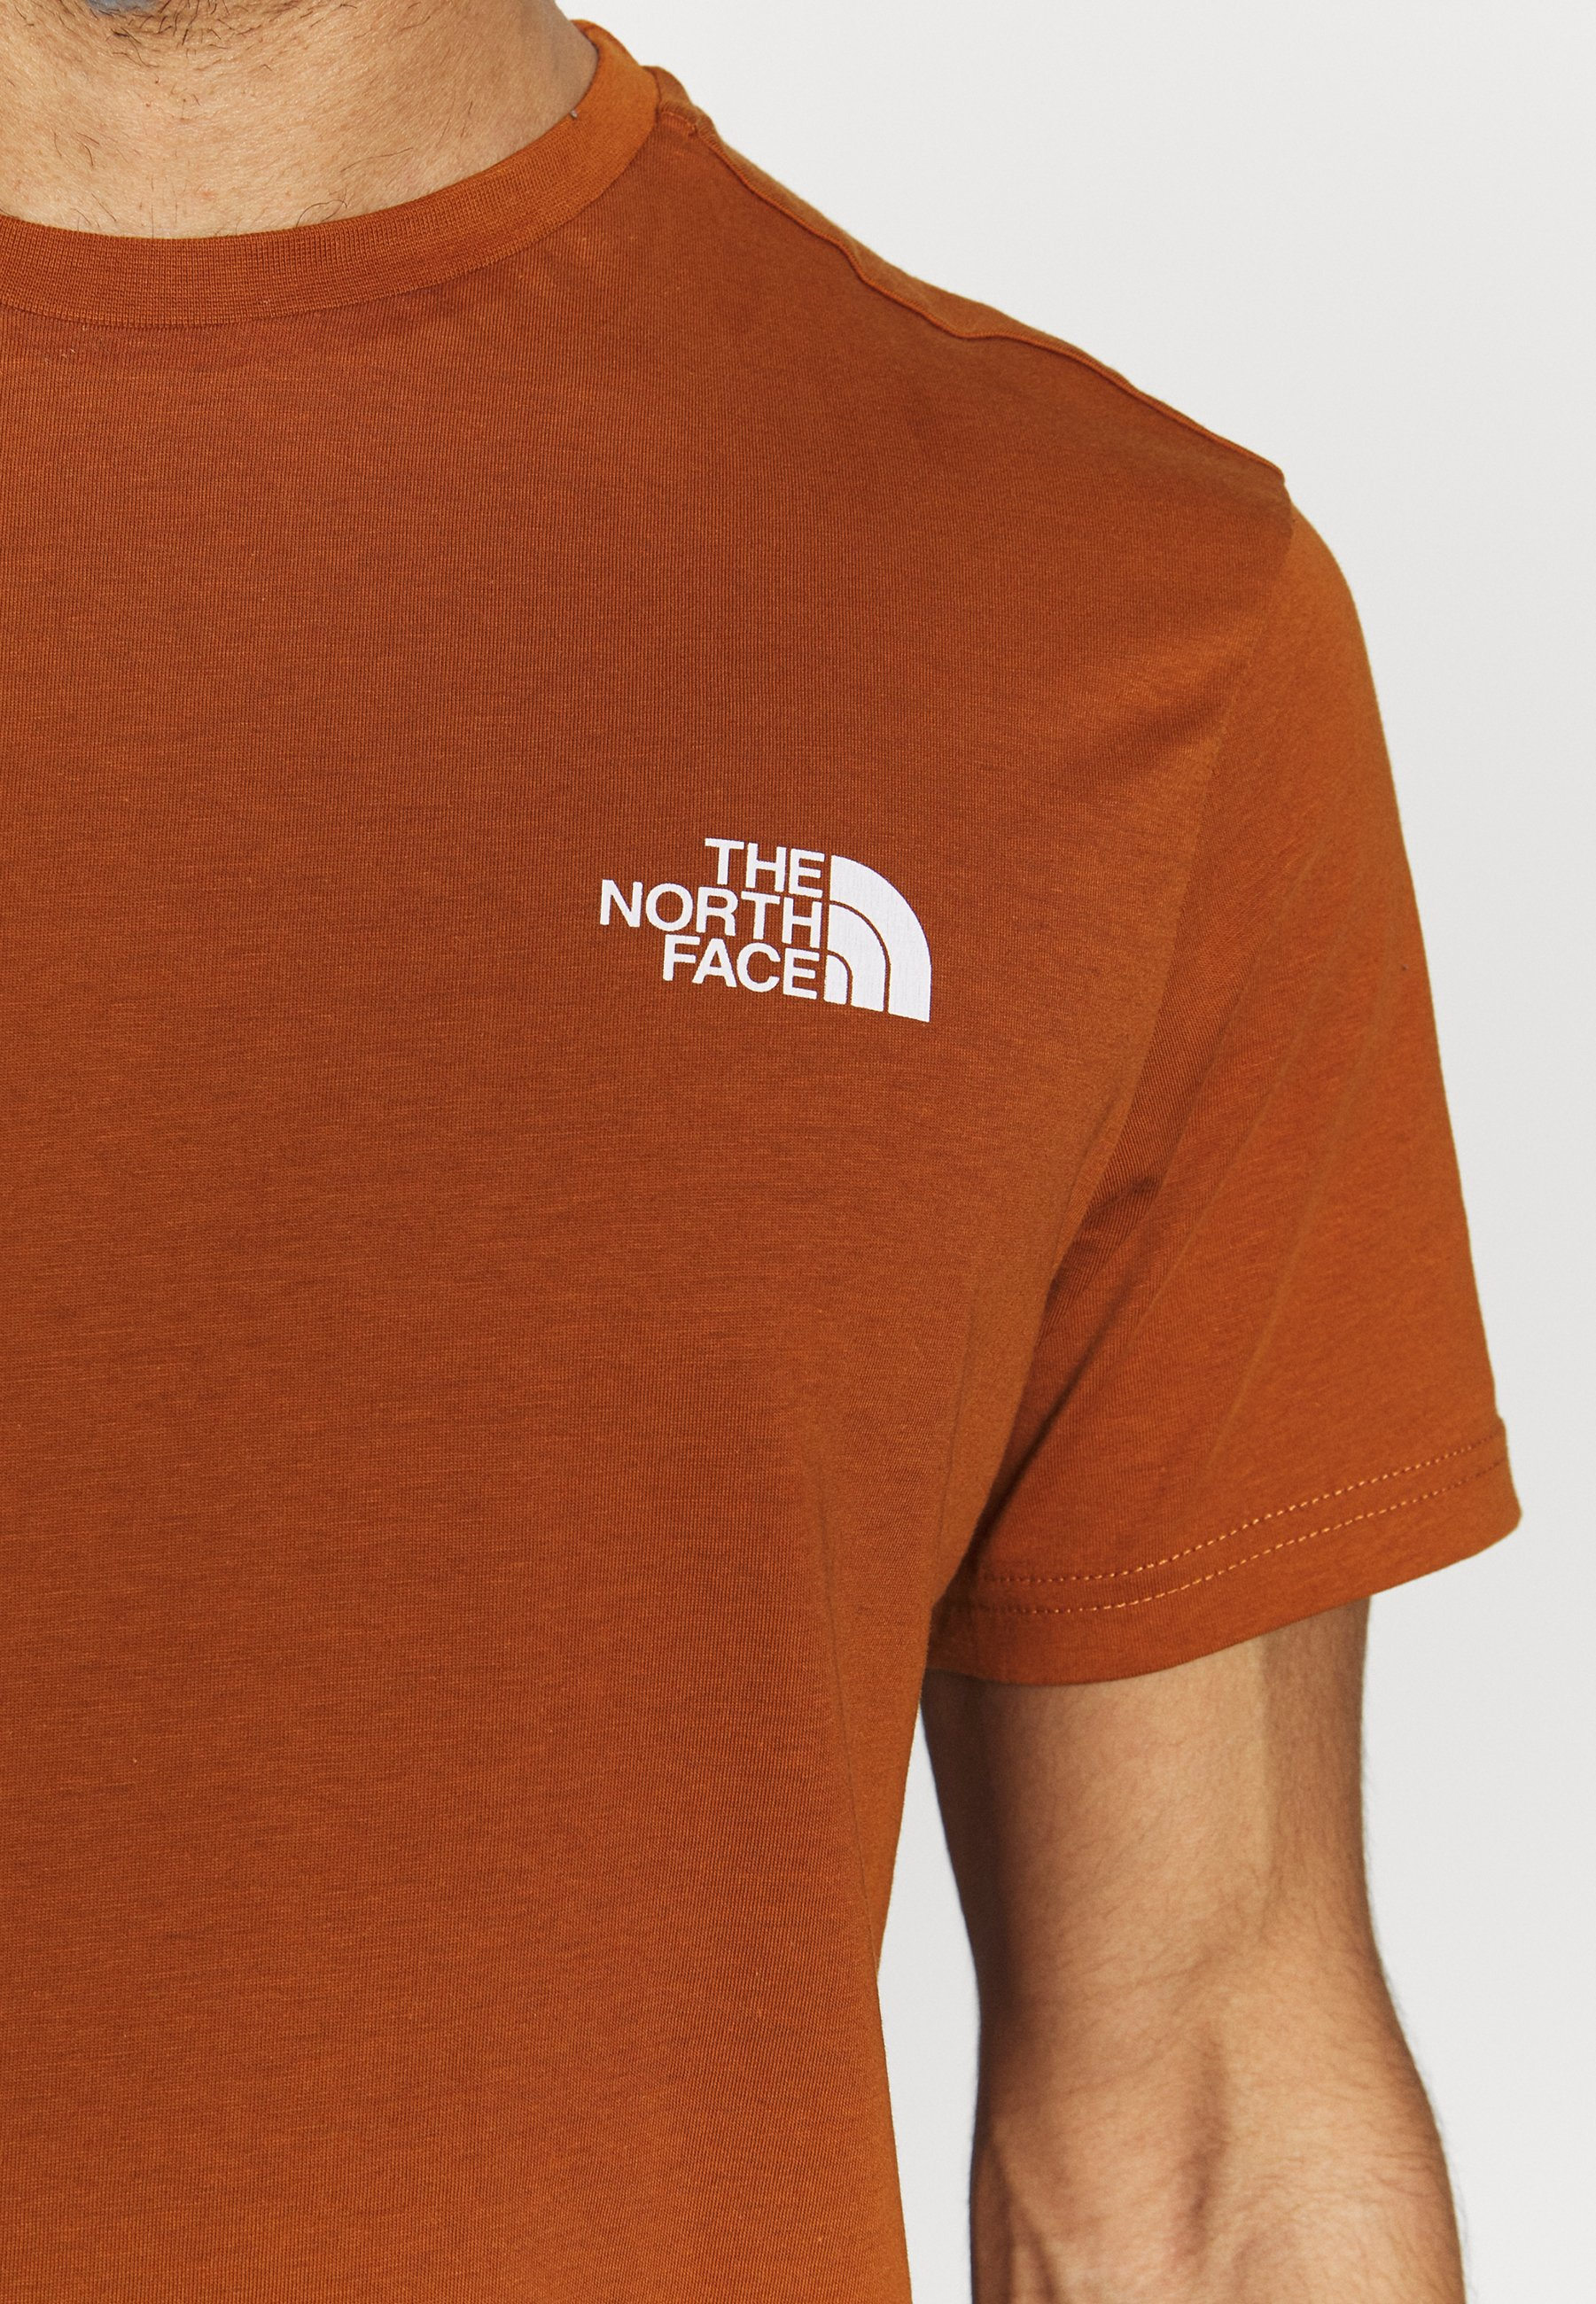 The North Face Mens Simple Dome Tee - T-shirt Basique Caramel Cafe